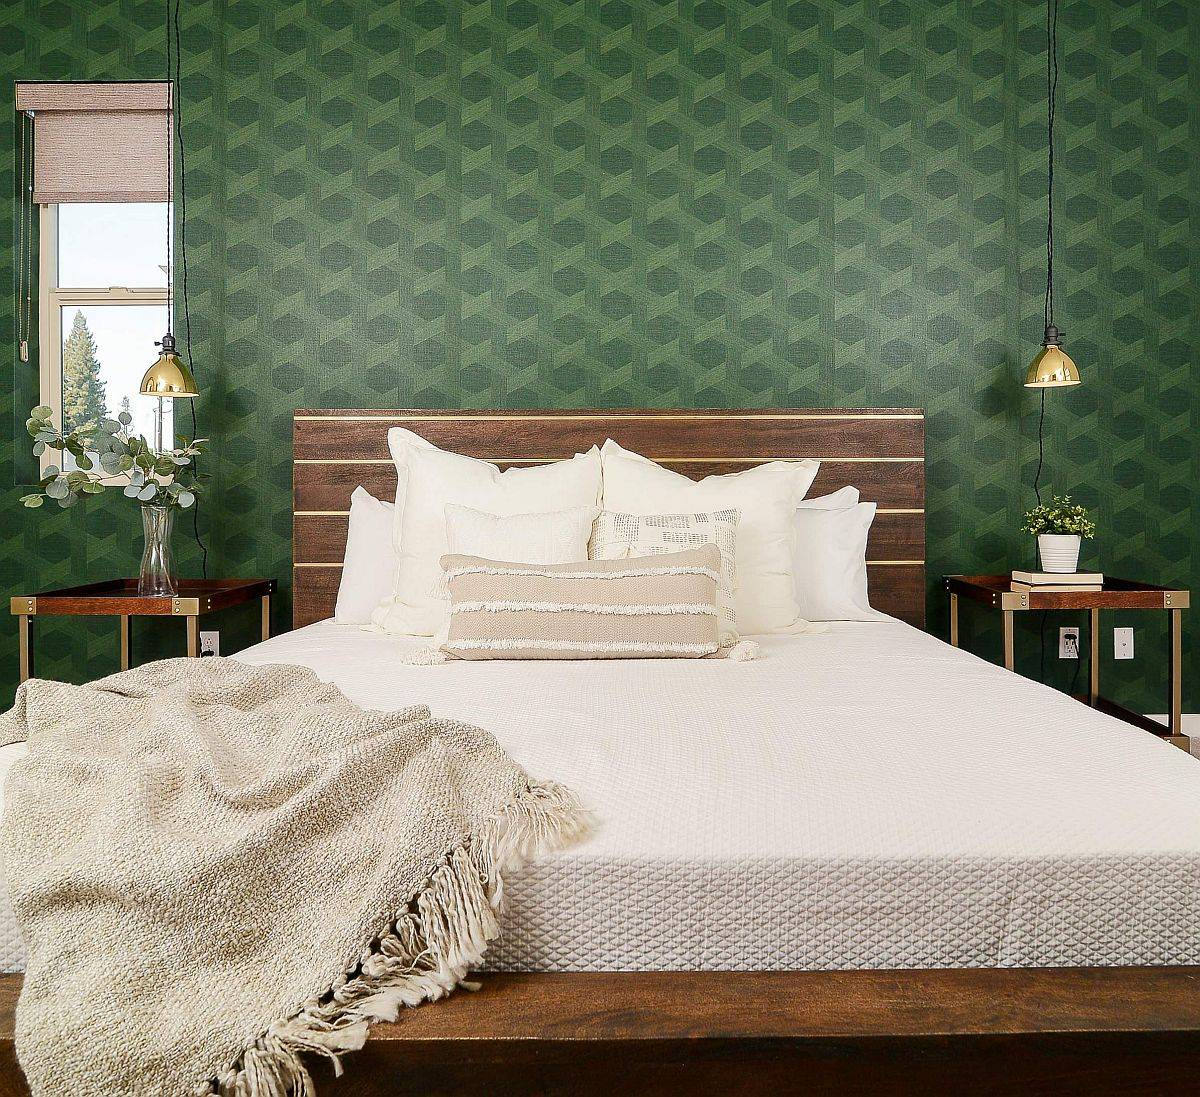 Using-wallpaper-to-add-green-goodness-to-the-spacious-modern-bedroom-21439